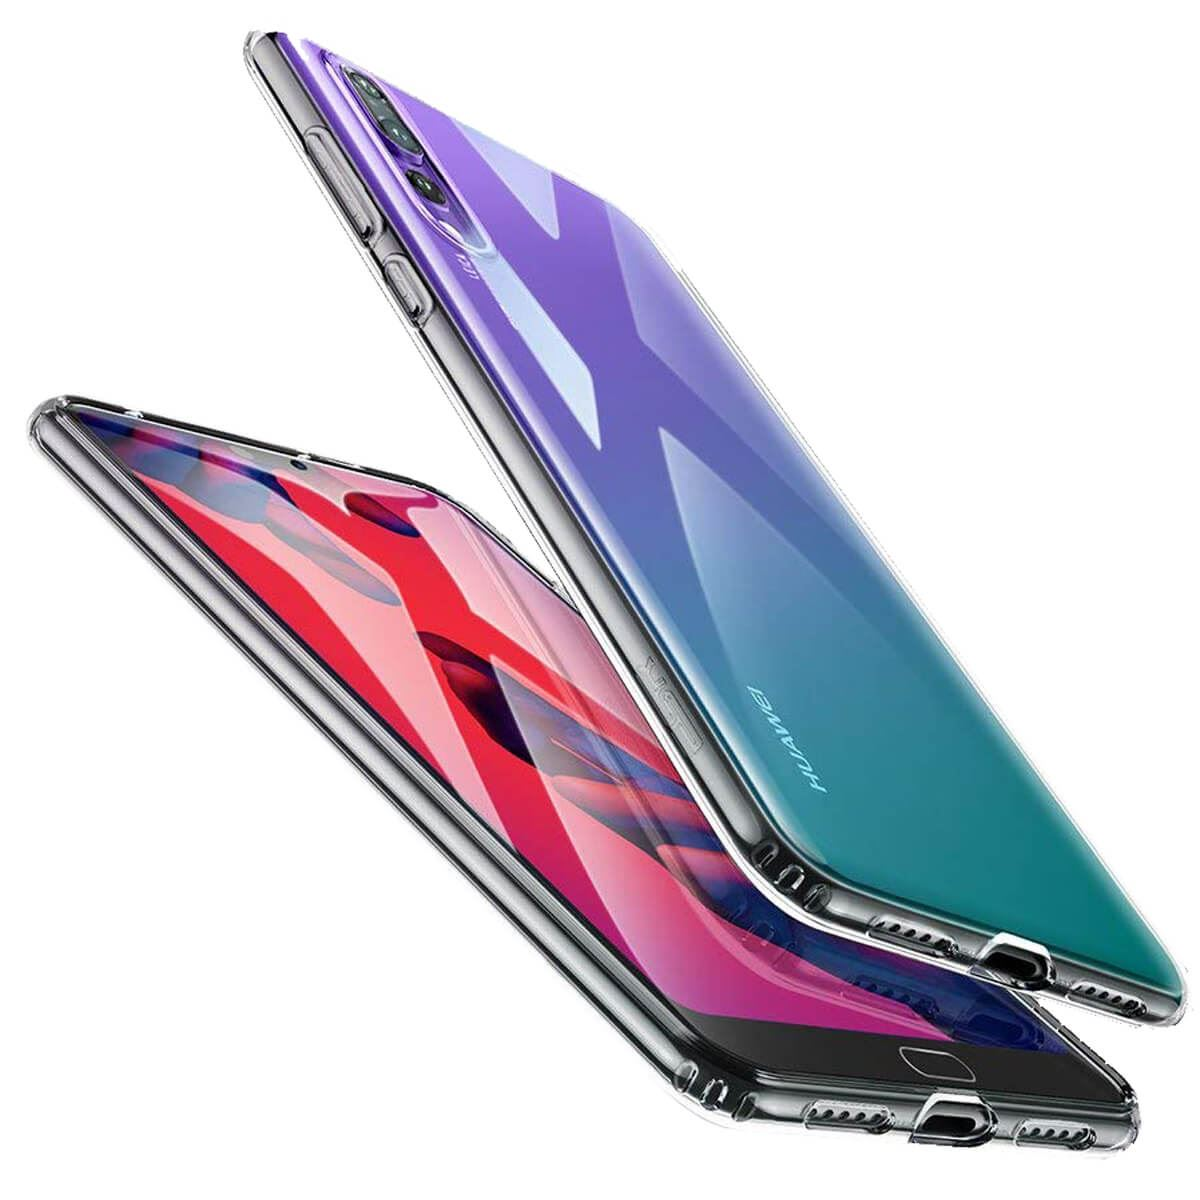 Case-For-Huawei-P20-Pro-P-Smart-Shockproof-Silicone-Protective-Clear-Gel-Cover thumbnail 4